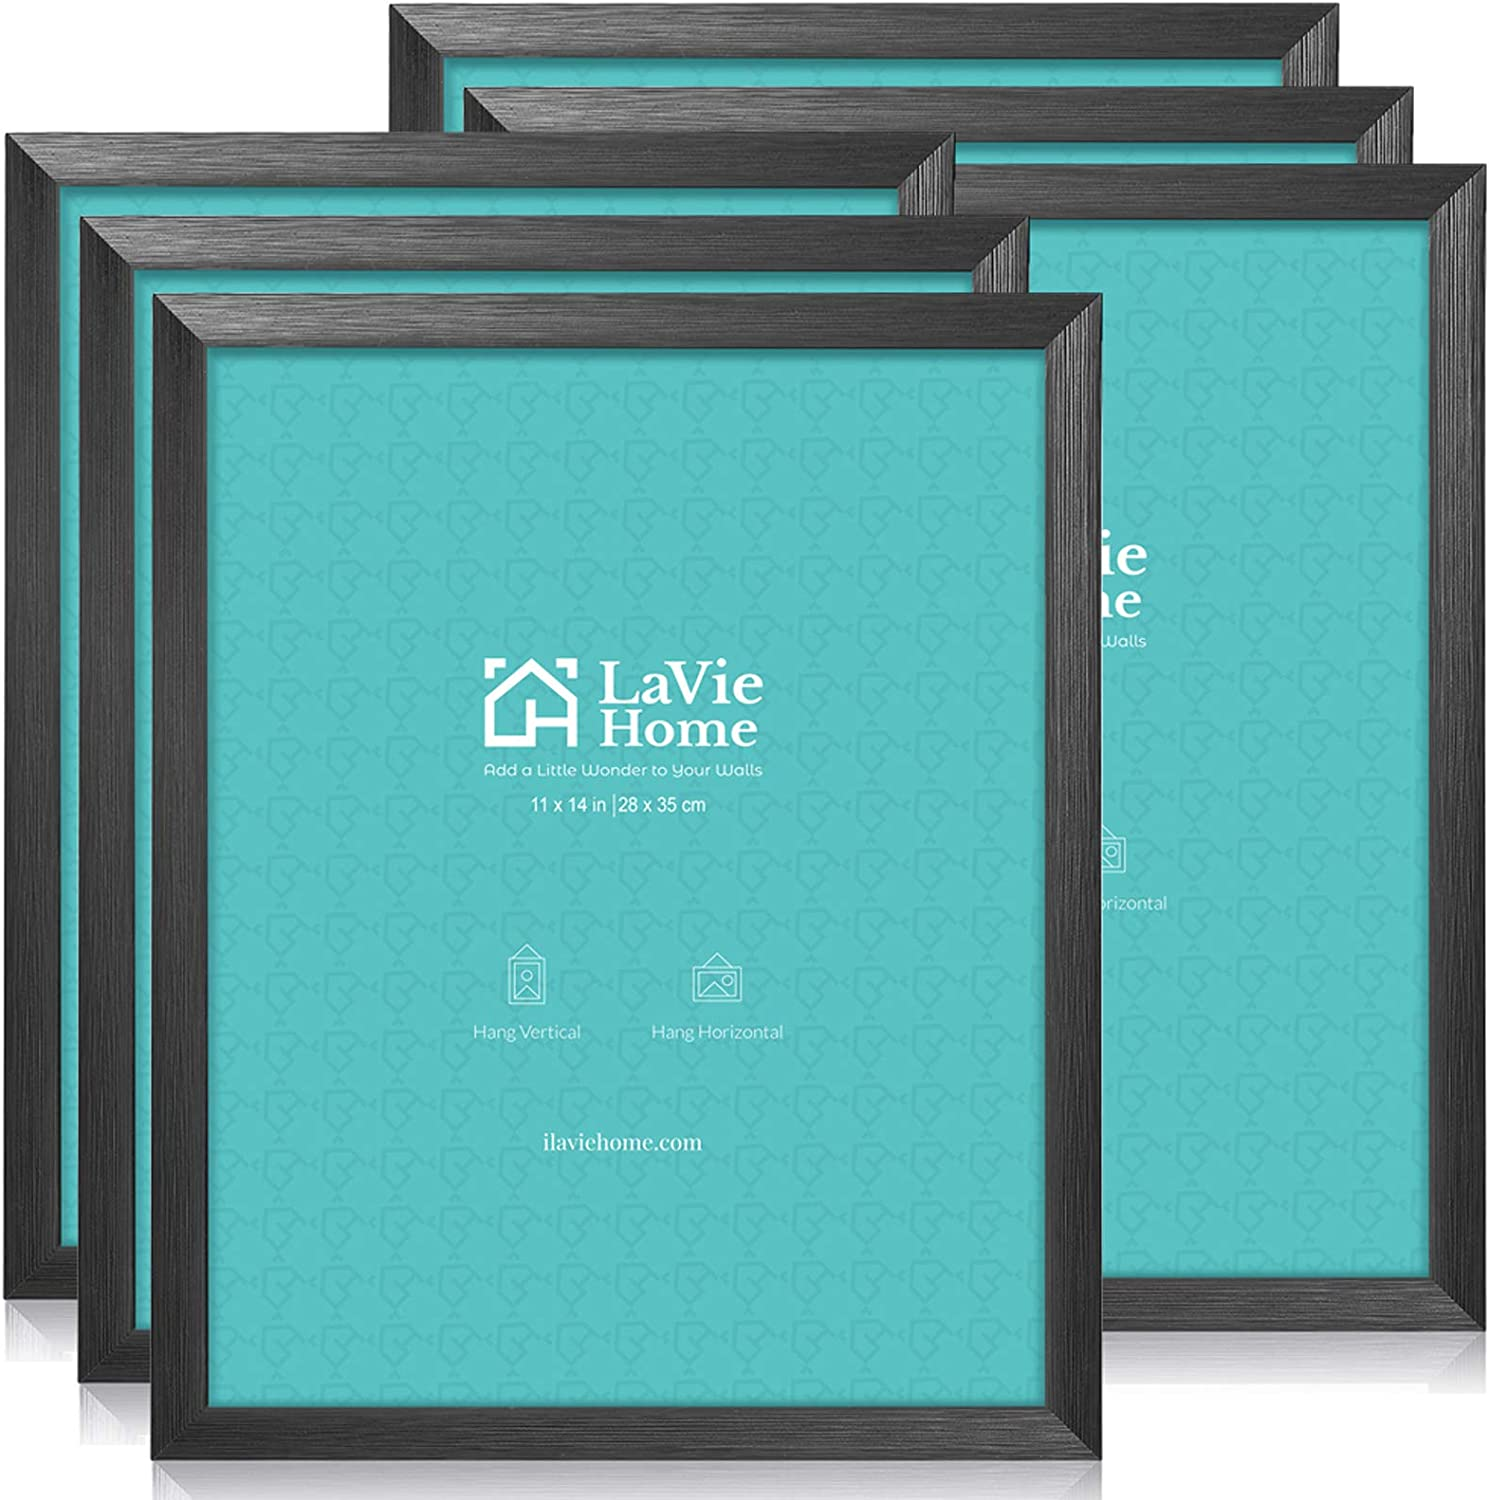 LaVie Home 11x14 Picture Frames (6 Pack, Black) Photo Frame with Simple Lines, High Definition Glass for Wall Mount Display,Set of 6 Zest Collection